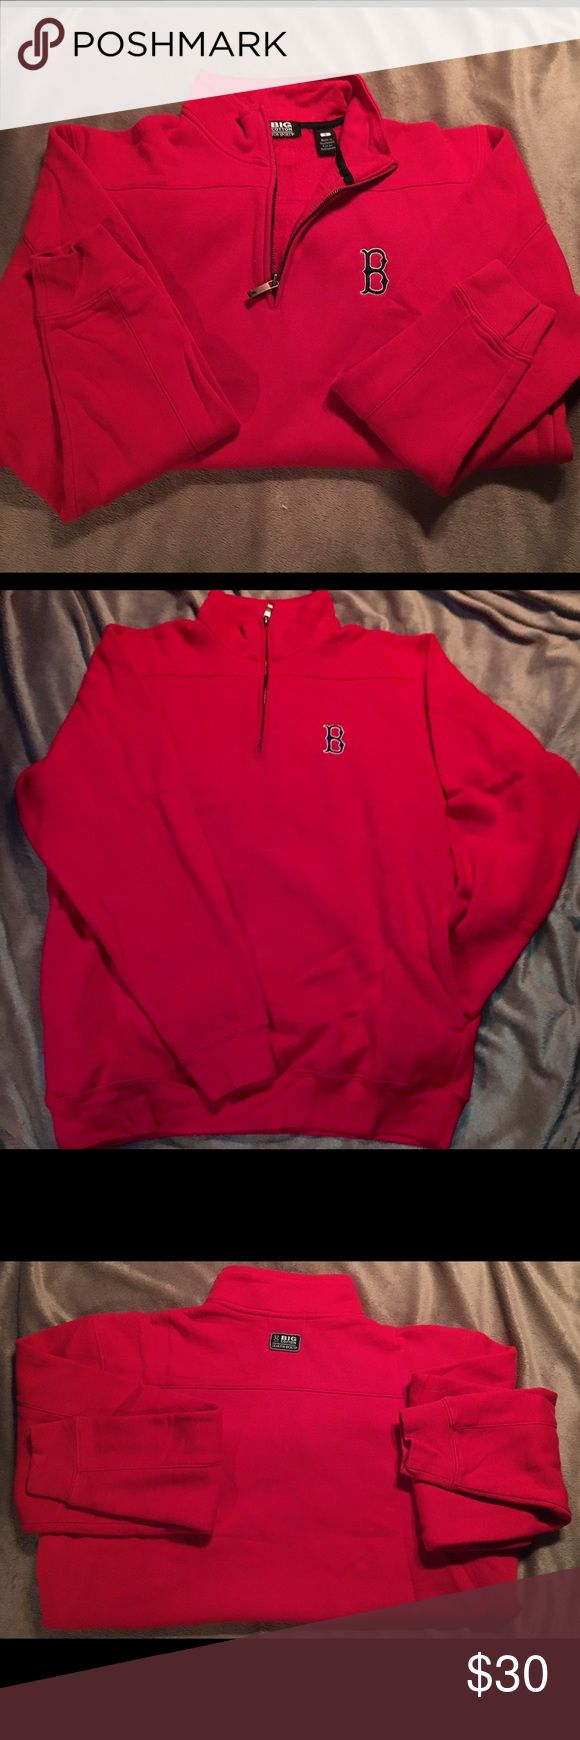 🔥SALE Boston Red Sox 1/4 zip pullover Like NEW! Small MLB red pullover. Super soft 💯 Authentic (most receipts have been posted).  🚫No trades  ✅Only respectable offers made thru the OFFER tool accepted ❣️Please be kind as that's what you'll get in return ☮️Thanks for the opportunity to share my goods w/ u Big Cotton Shirts Sweatshirts & Hoodies